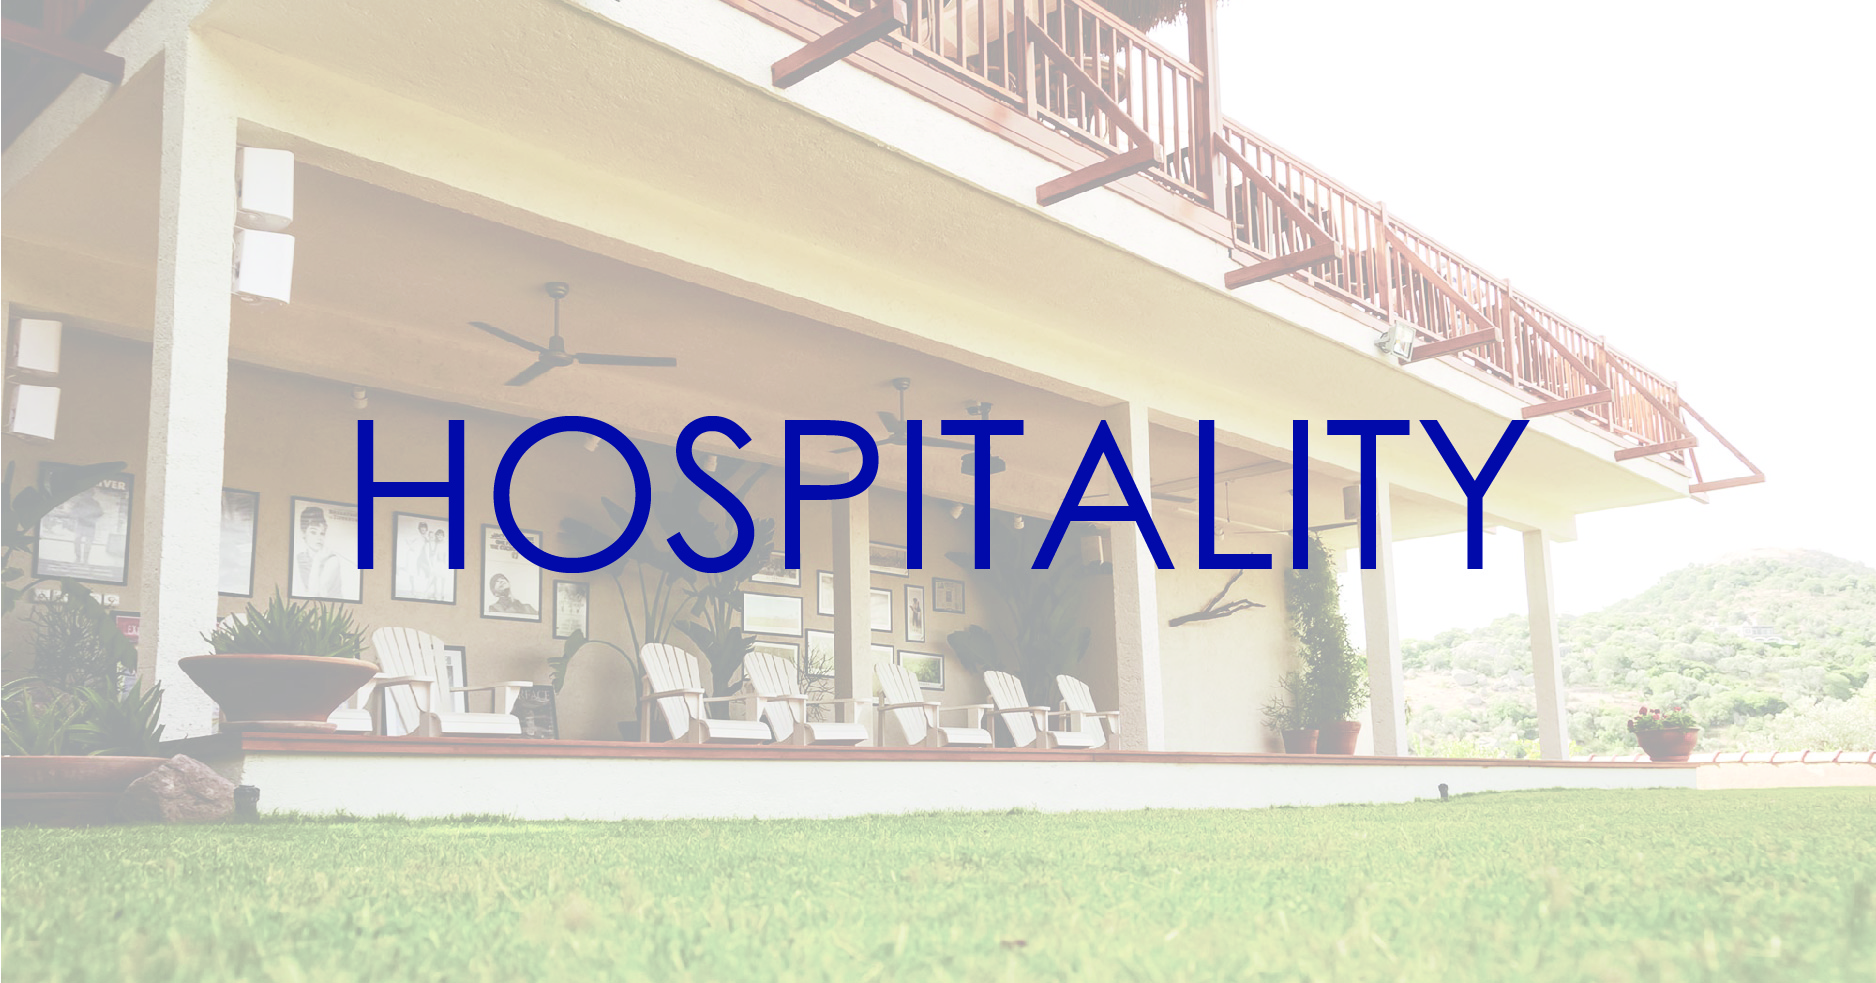 Hospitality - Archived Title-01-01-01.jpg